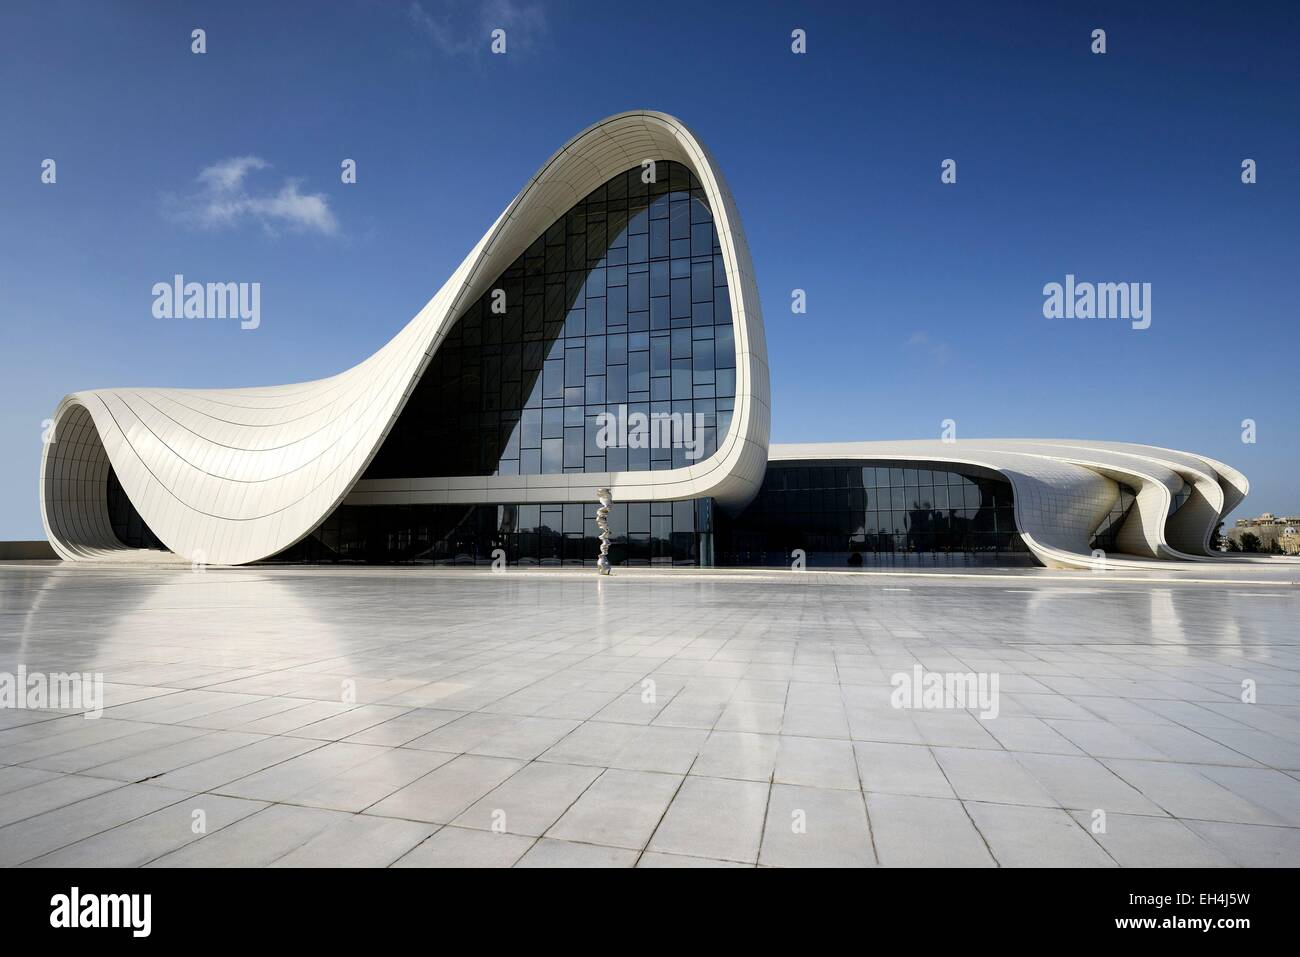 azerbaijan museum stockfotos azerbaijan museum bilder alamy. Black Bedroom Furniture Sets. Home Design Ideas